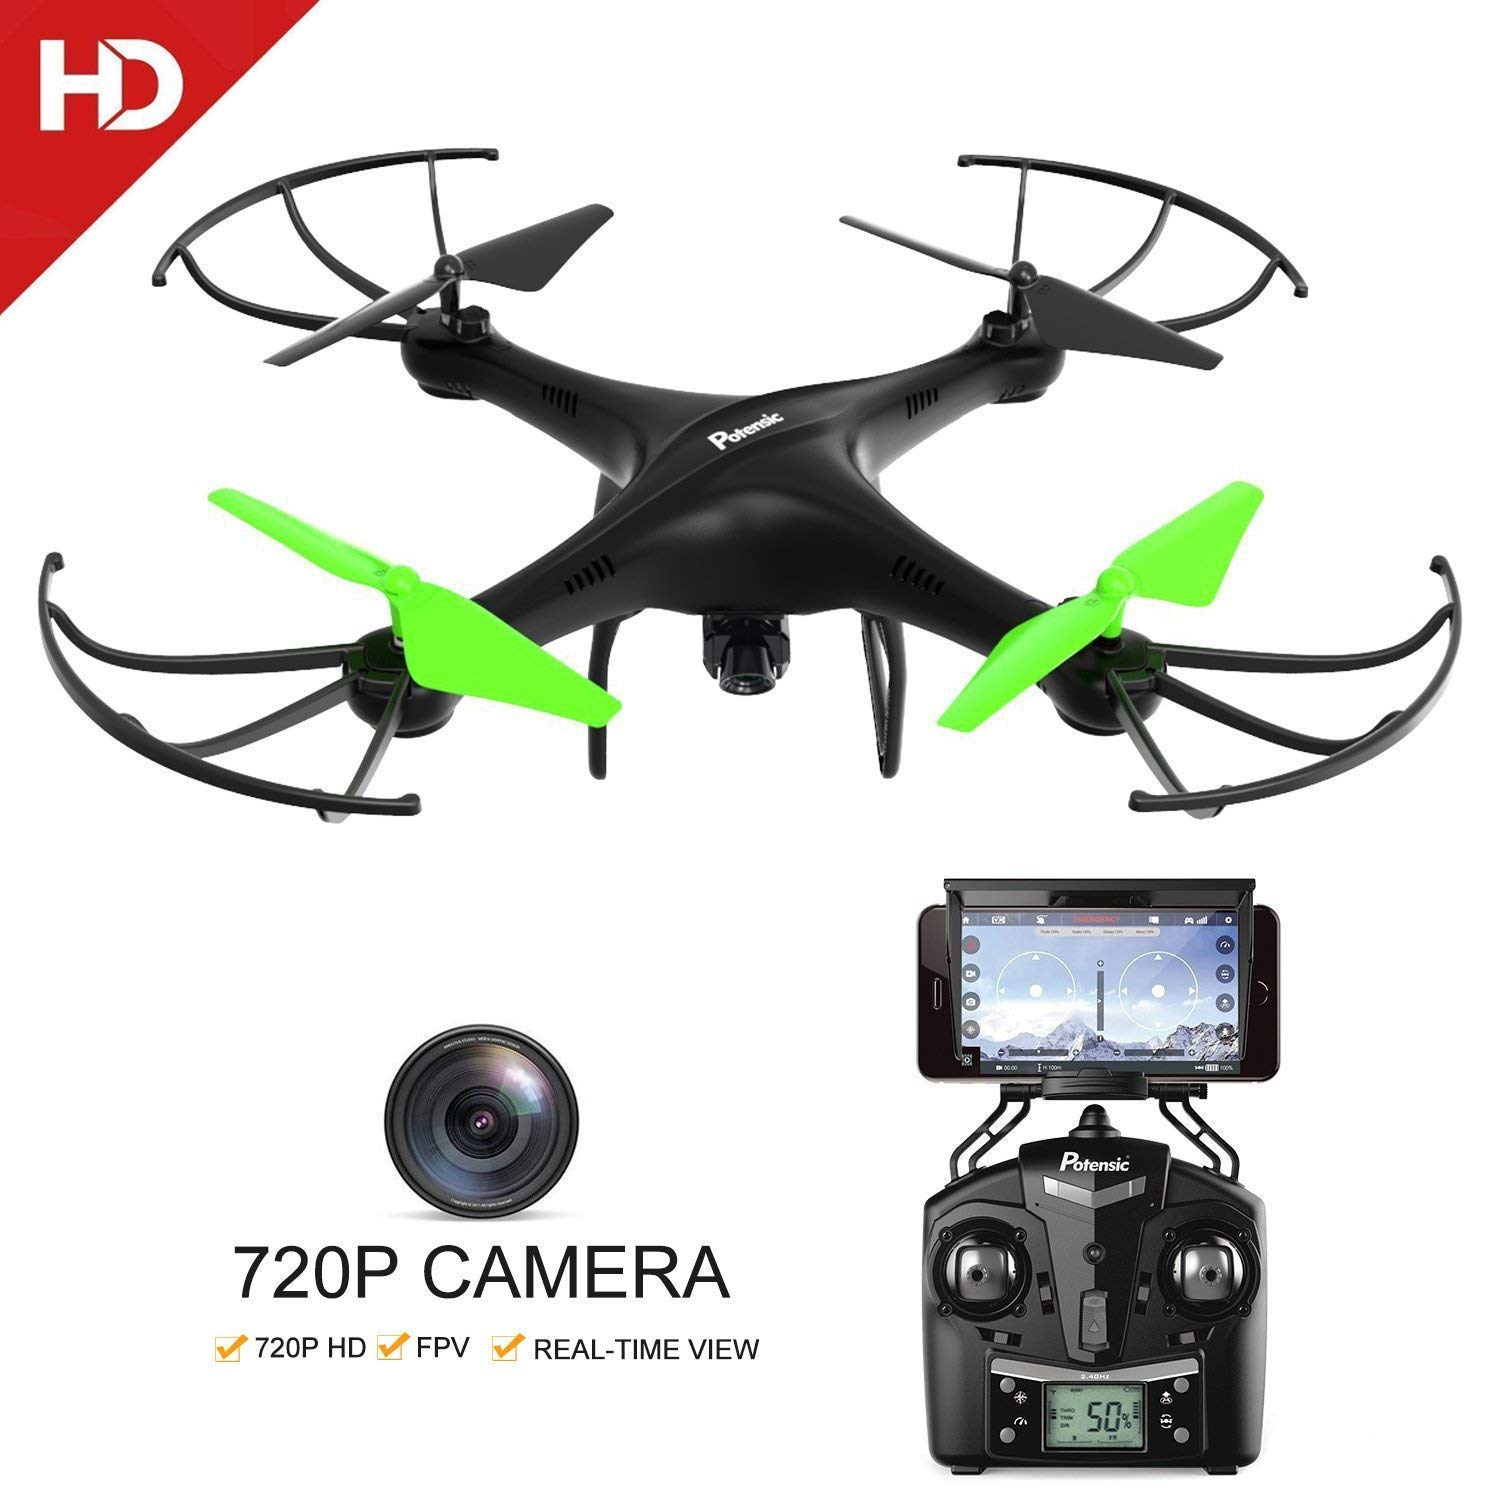 Potensic U48WH UDIRC RTF Drone Quadcopter UFO with Newest Altitude Hold Fuction&HD WiFi Camera and 3D Flips Function (TF Card & Card Reader Included)